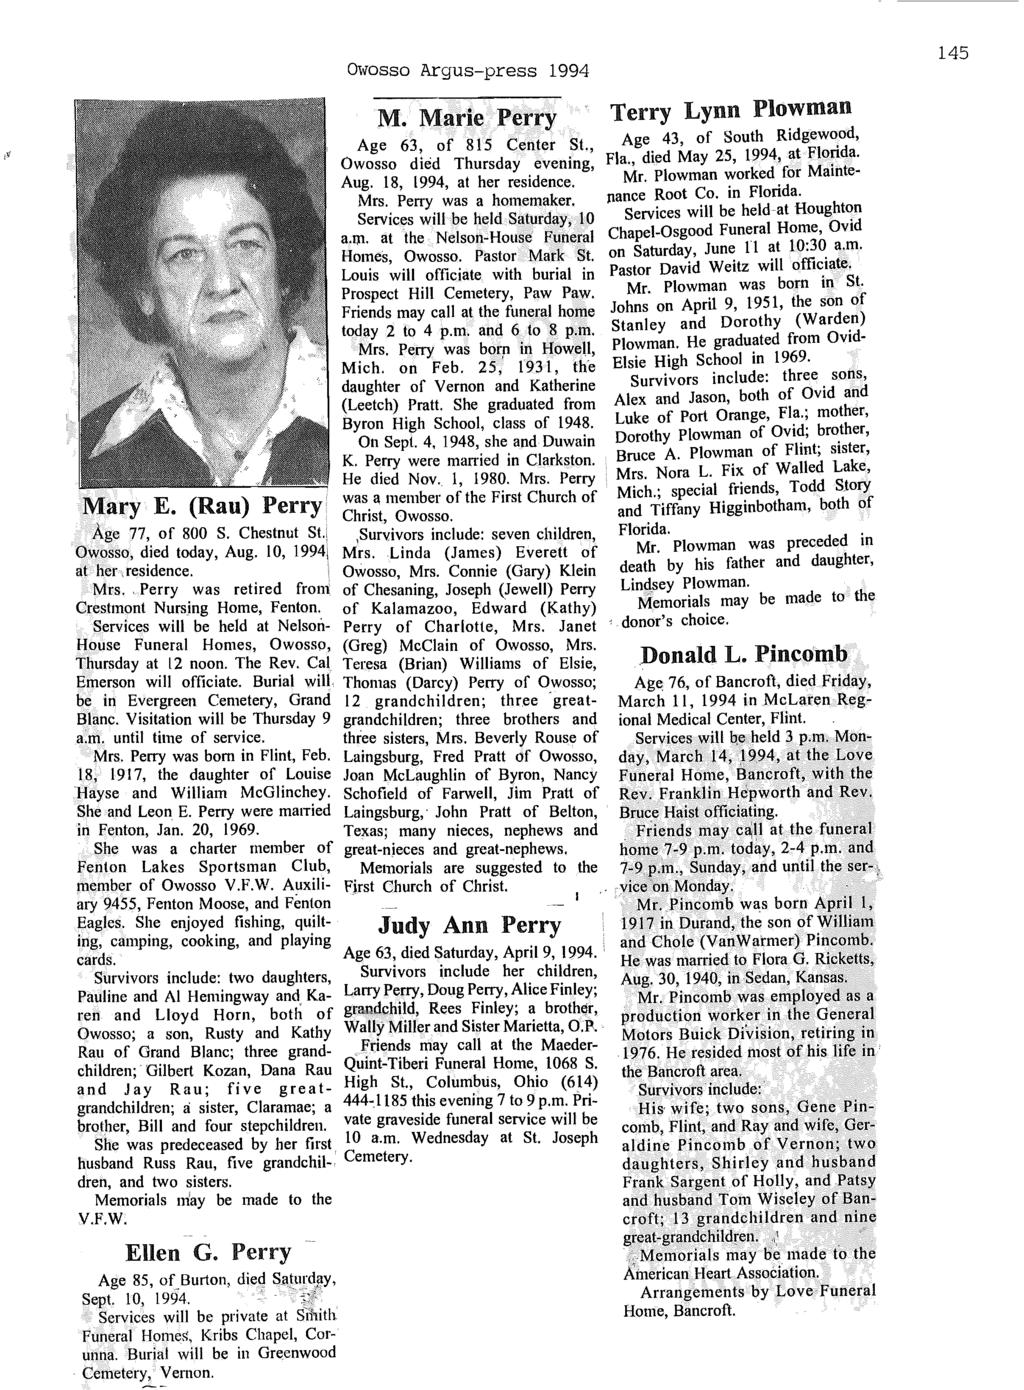 Owosso Argus-press 1994 M. Marie Perry Age 63, of 815 Center St., Owosso died Thursday evening, Aug. 18, 1994, at her residence. Mrs. Perry was a homemaker. Services will be held Saturday, 10 a.jp.